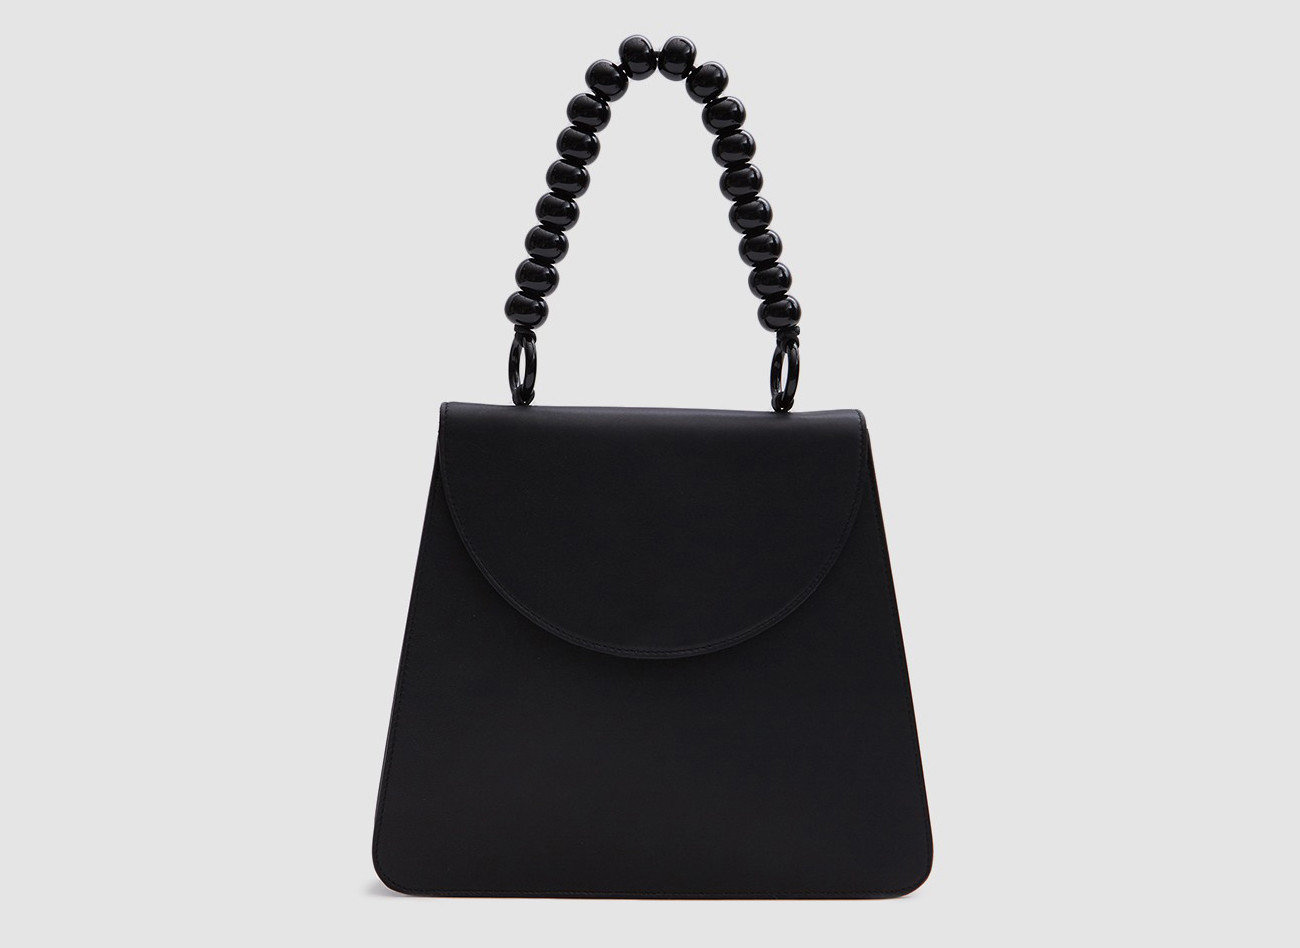 Style + Design Travel Shop bag handbag black shoulder bag fashion accessory product leather product design brand rectangle luggage & bags accessory